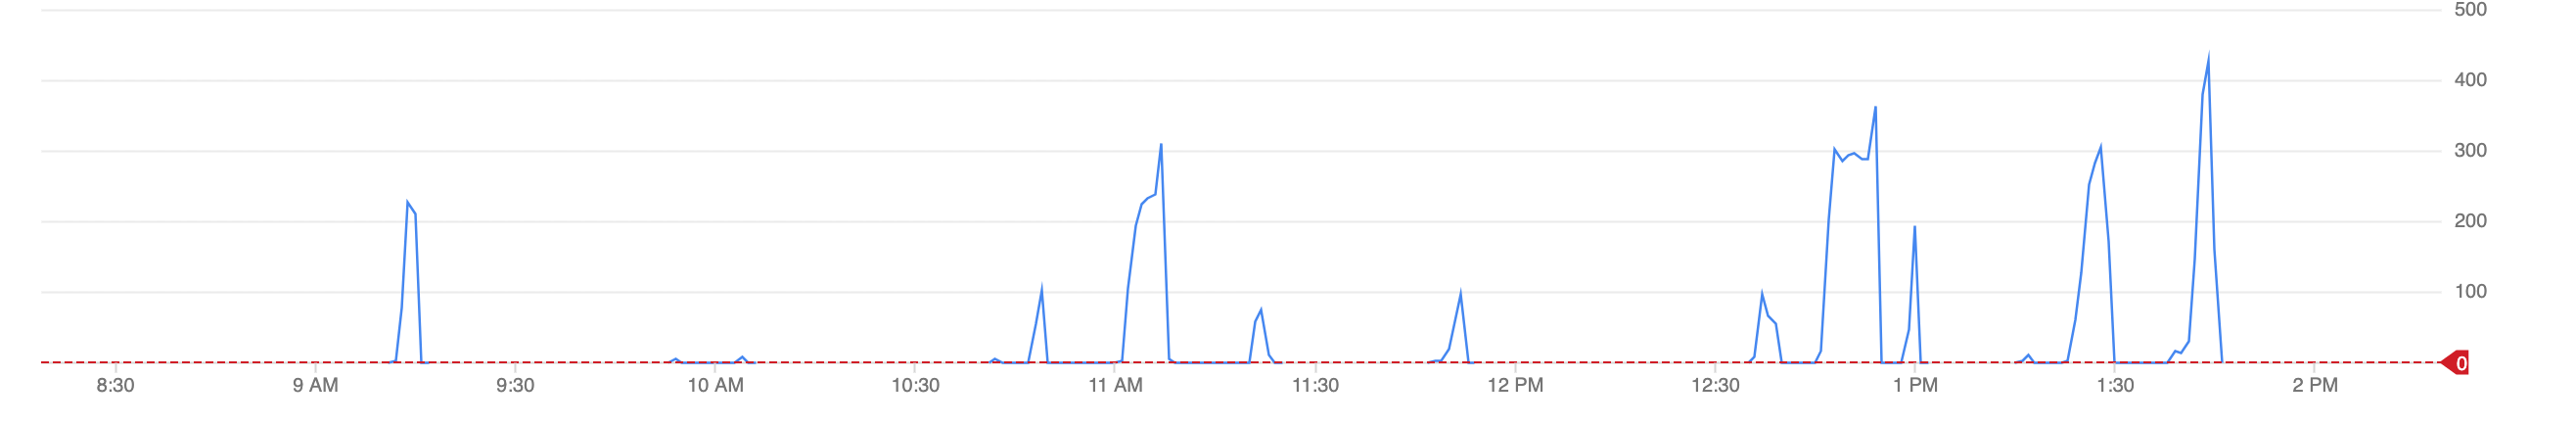 Line graph showing outages as spikes